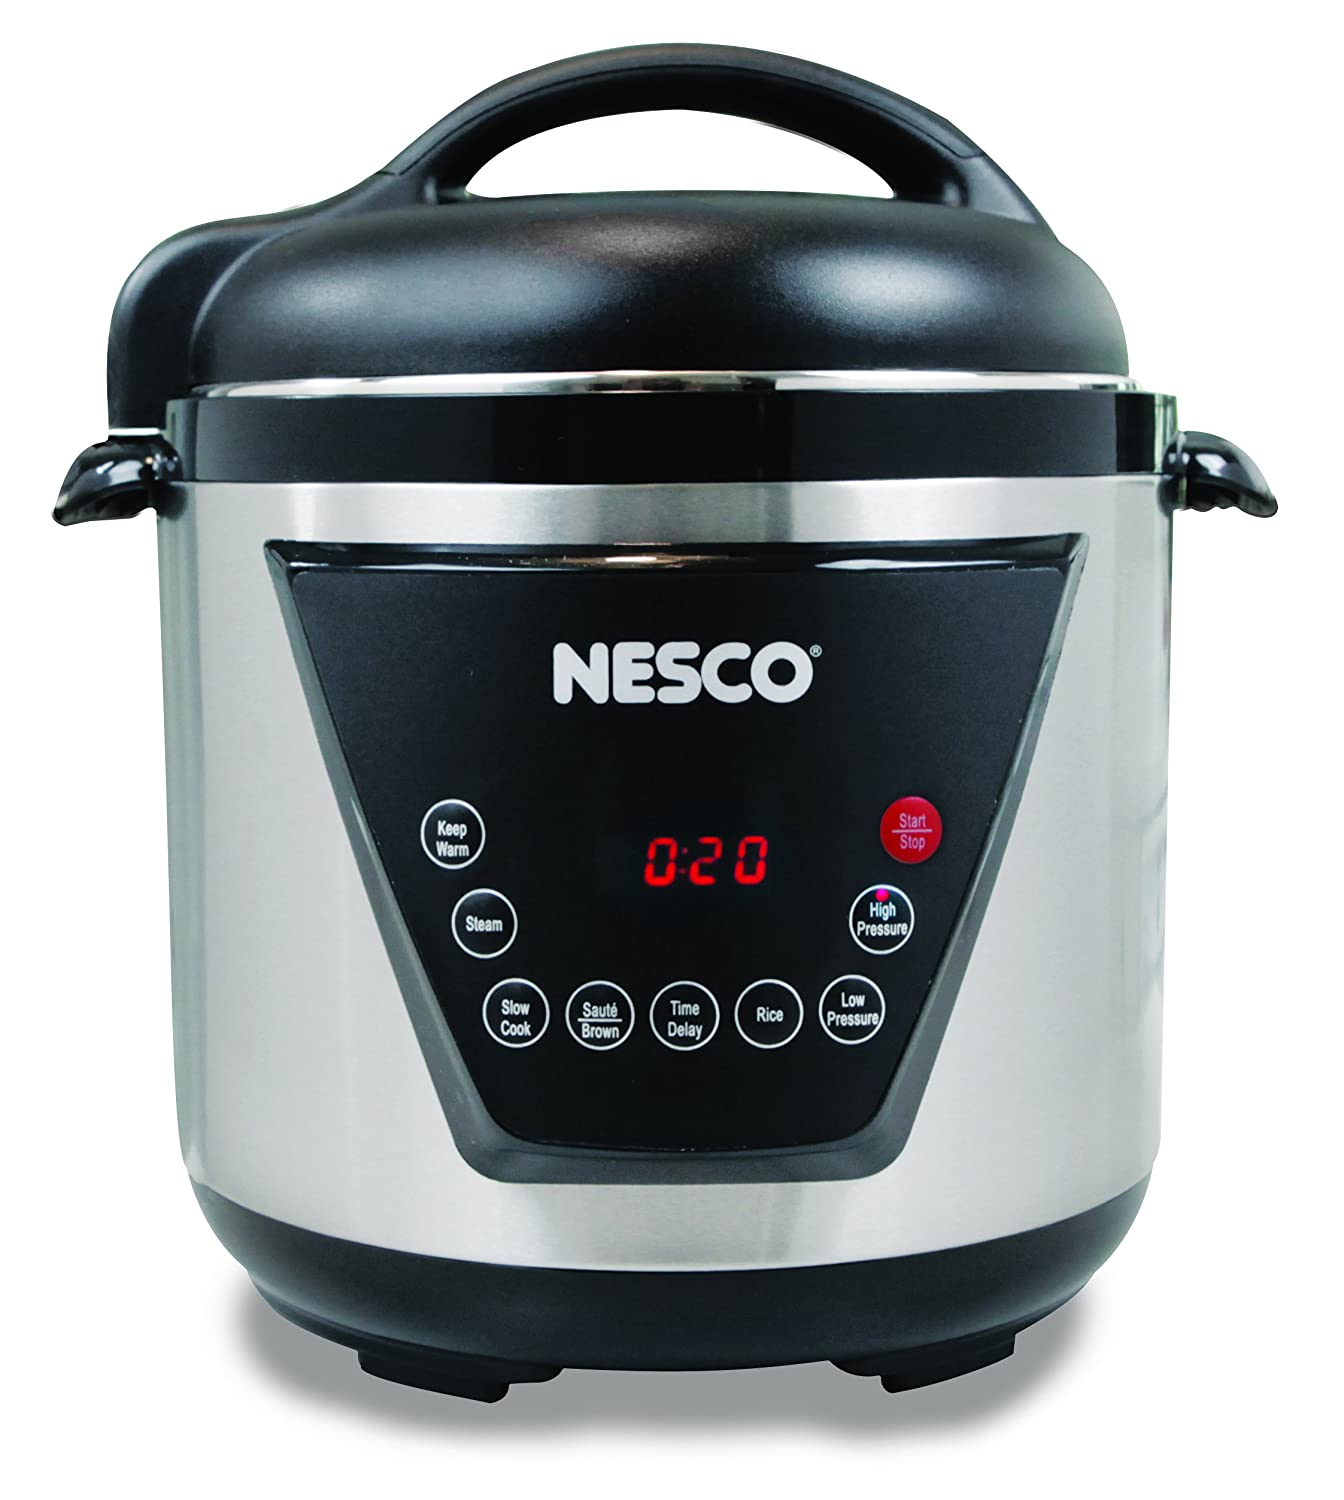 NESCO PC6-13, Pressure Cooker, Silver/Black, 6 quart, 1000 watts